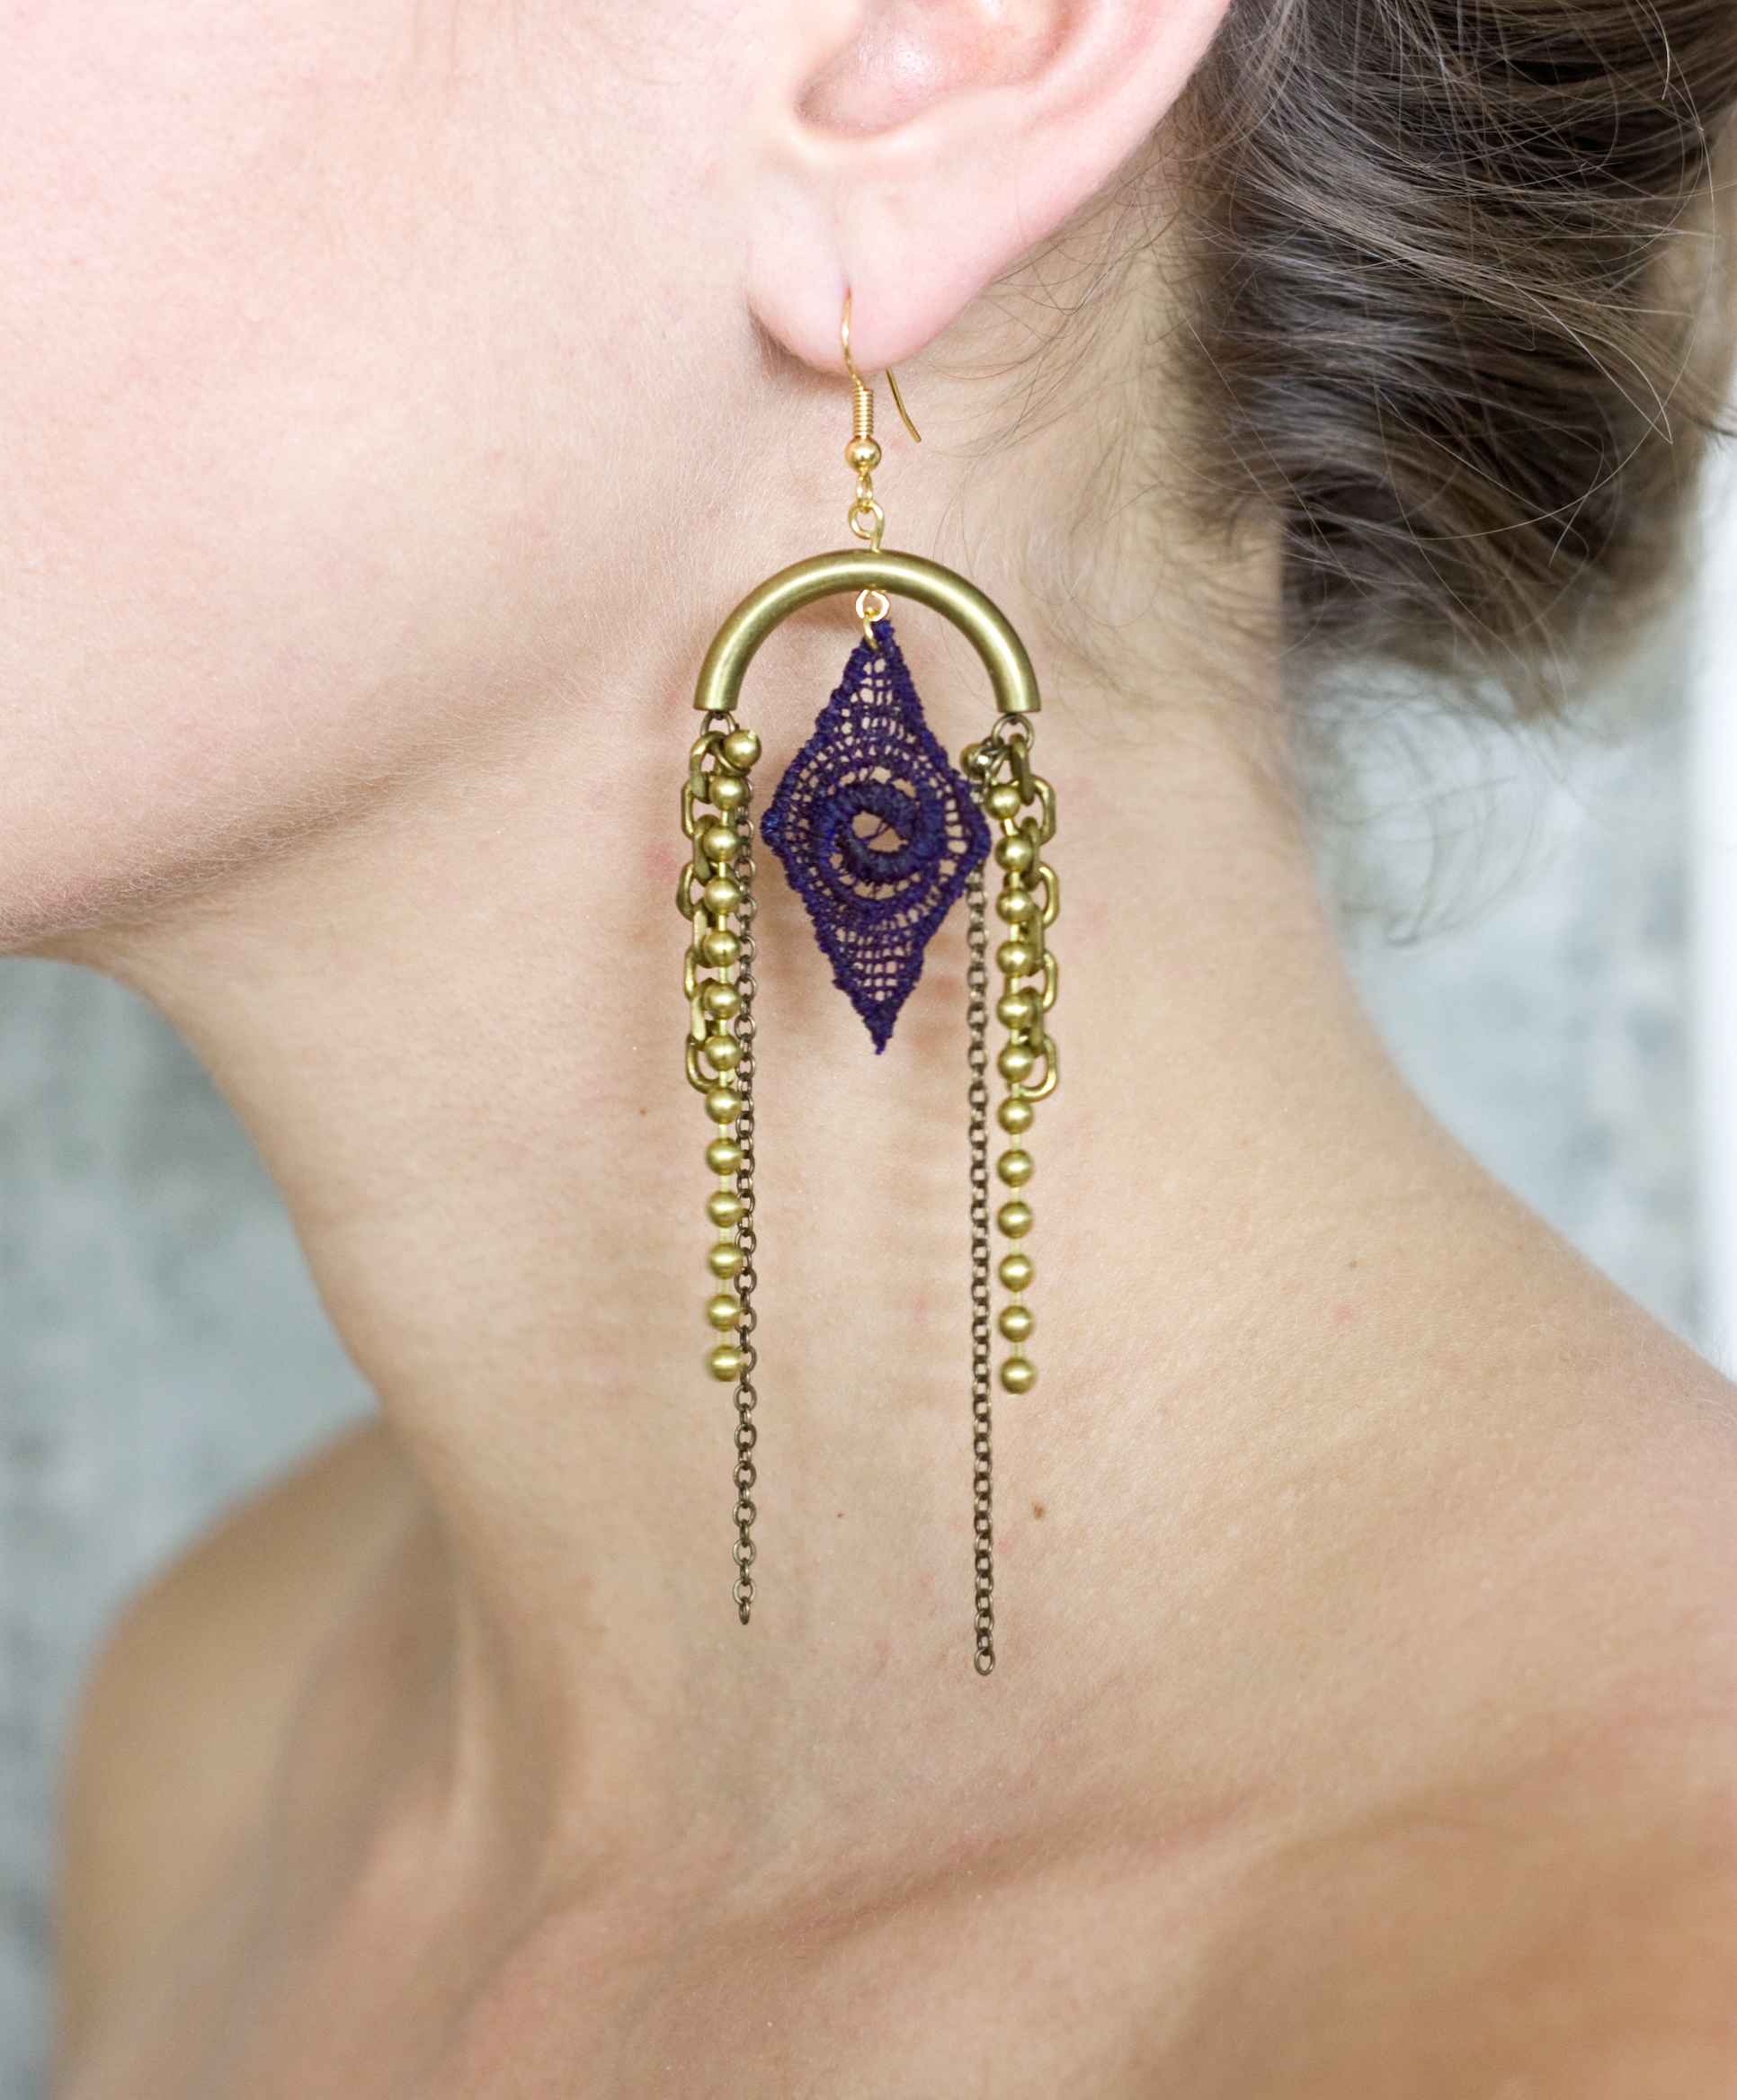 Gatsby earrings (SOLD OUT)